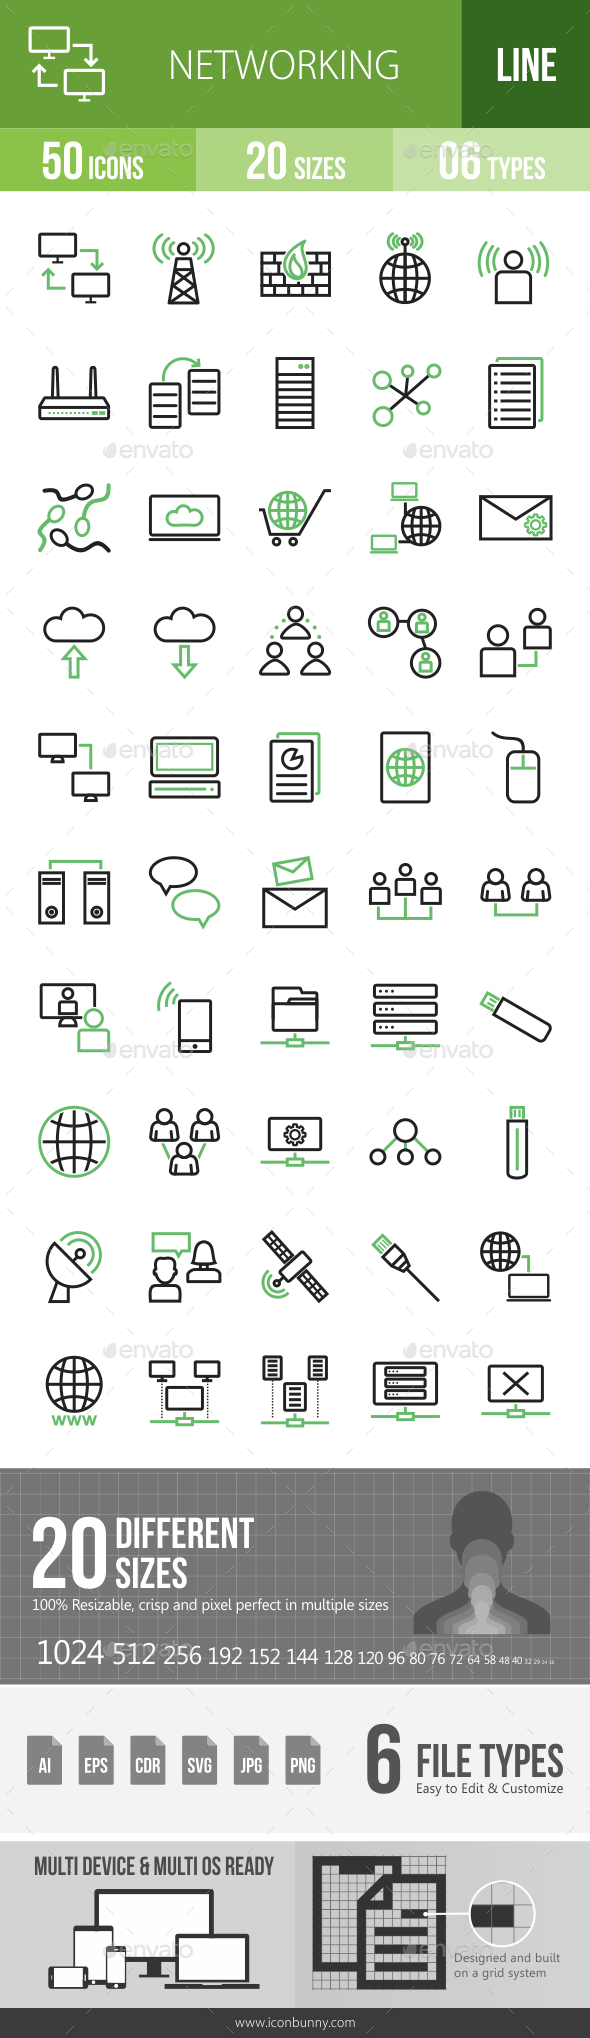 Networking Line Green & Black Icons - Icons